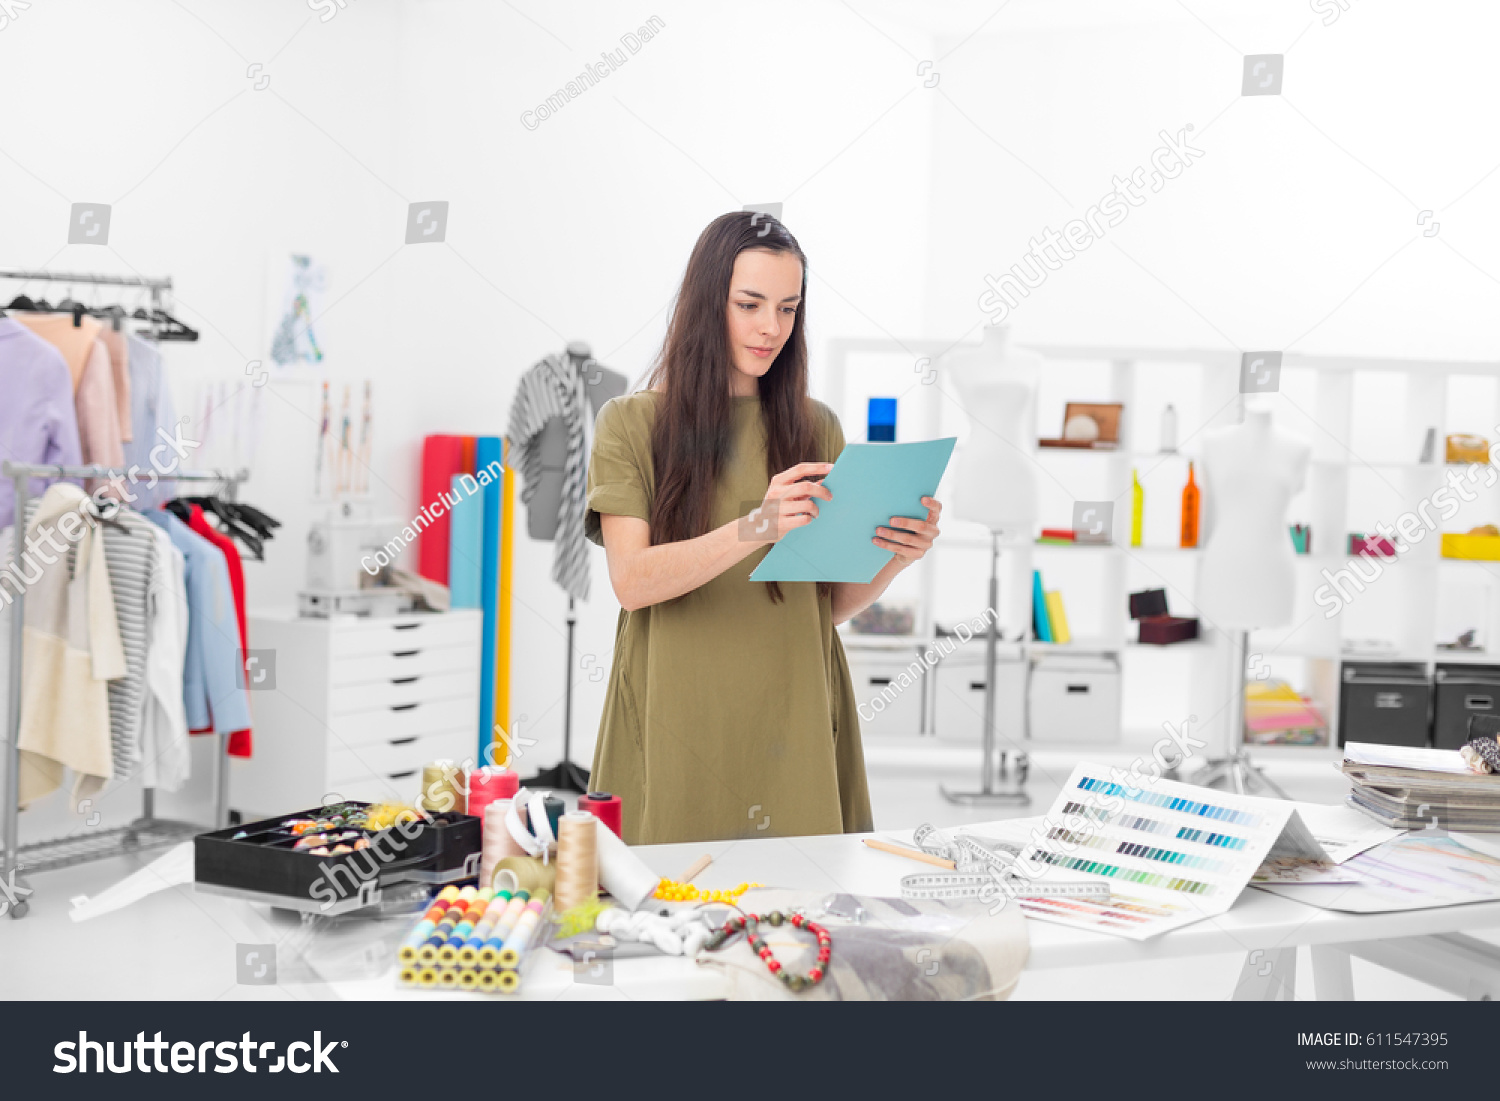 Young Fashion Designer Her Workshop Looking Stock Photo Edit Now 611547395